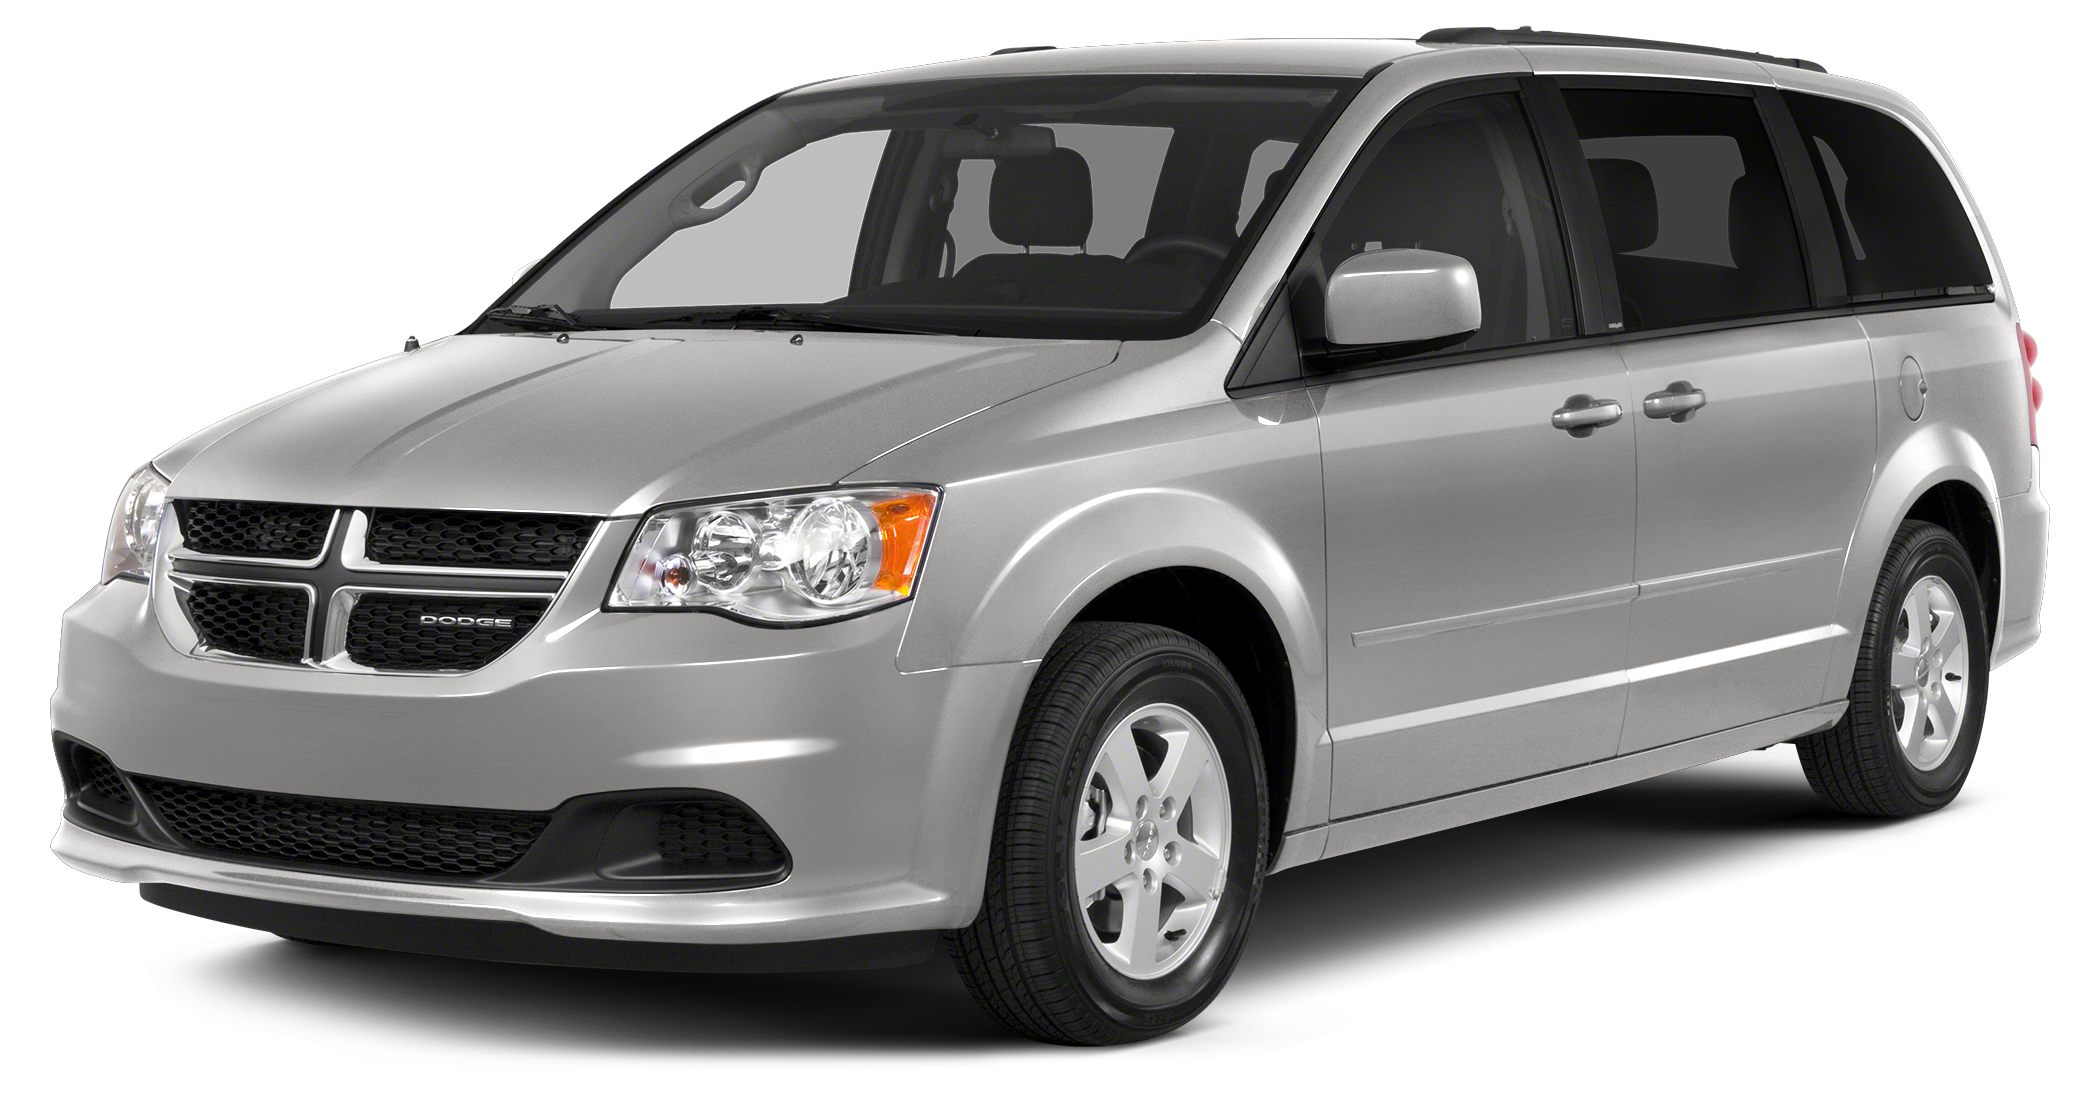 2014 Dodge Grand Caravan AVP DISCLAIMER We are excited to offer this vehicle to you but it is cur